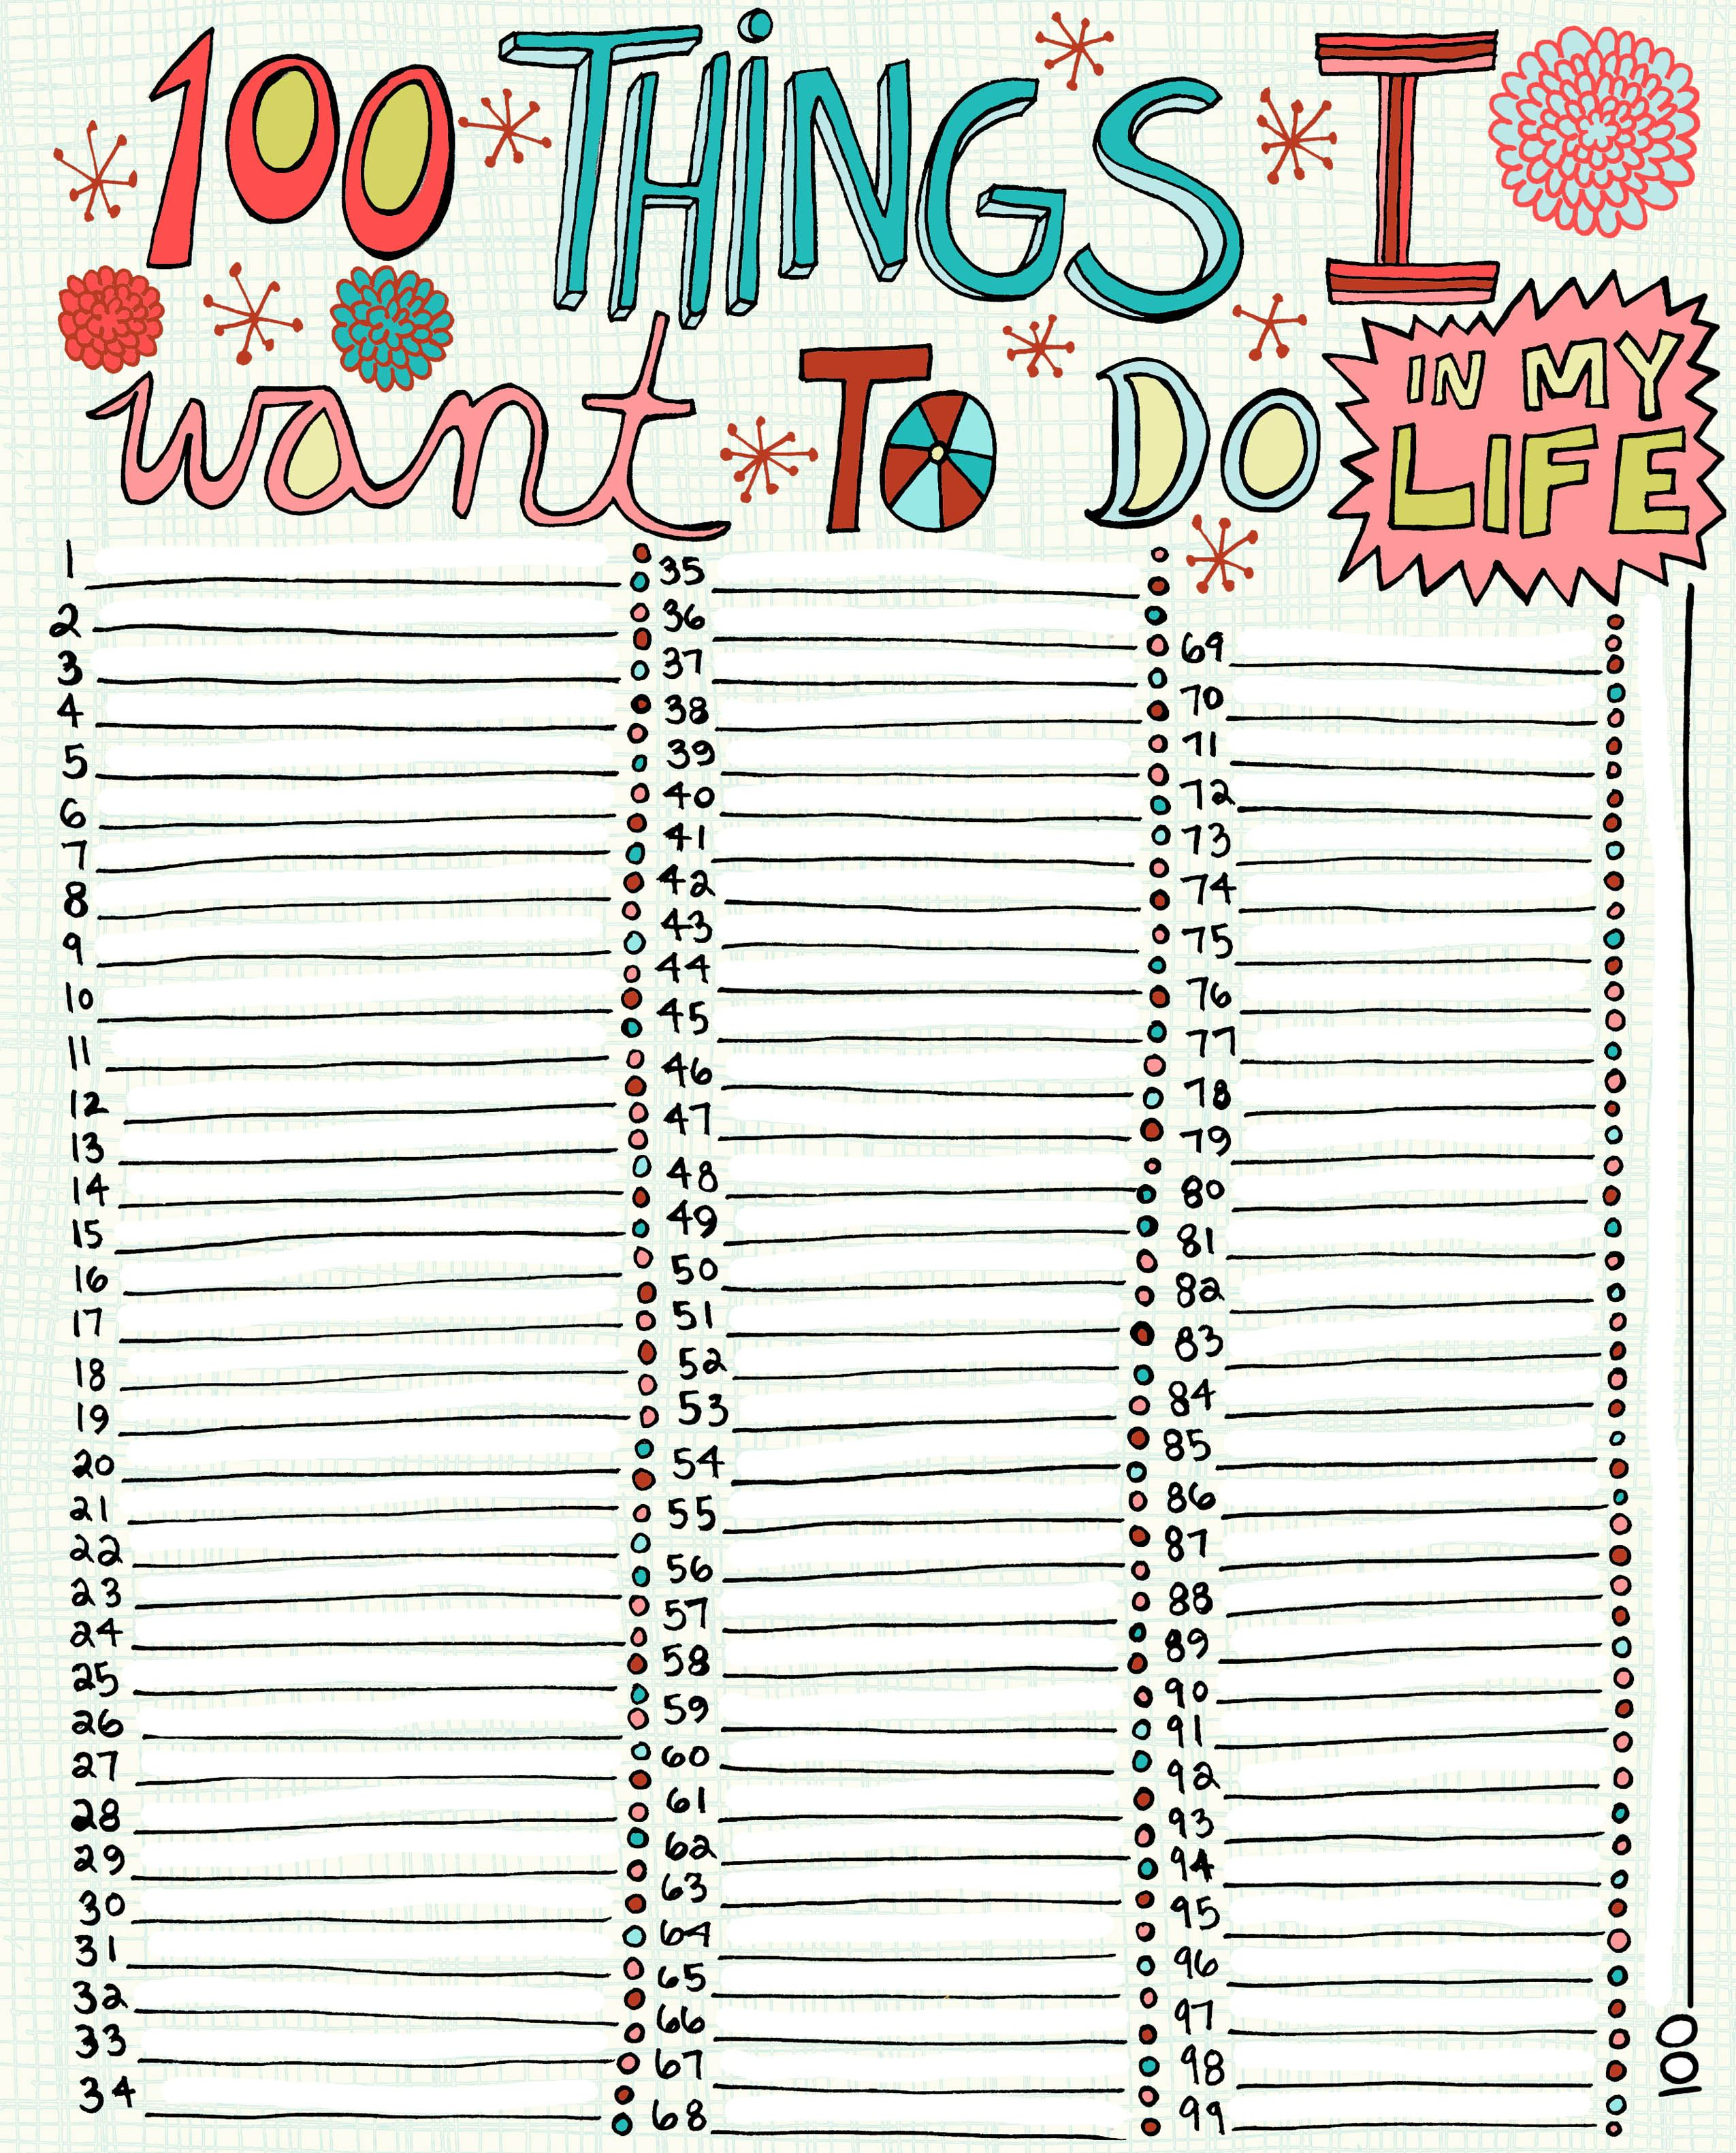 100 things i want to do in my lifejpg 25503162 pixels